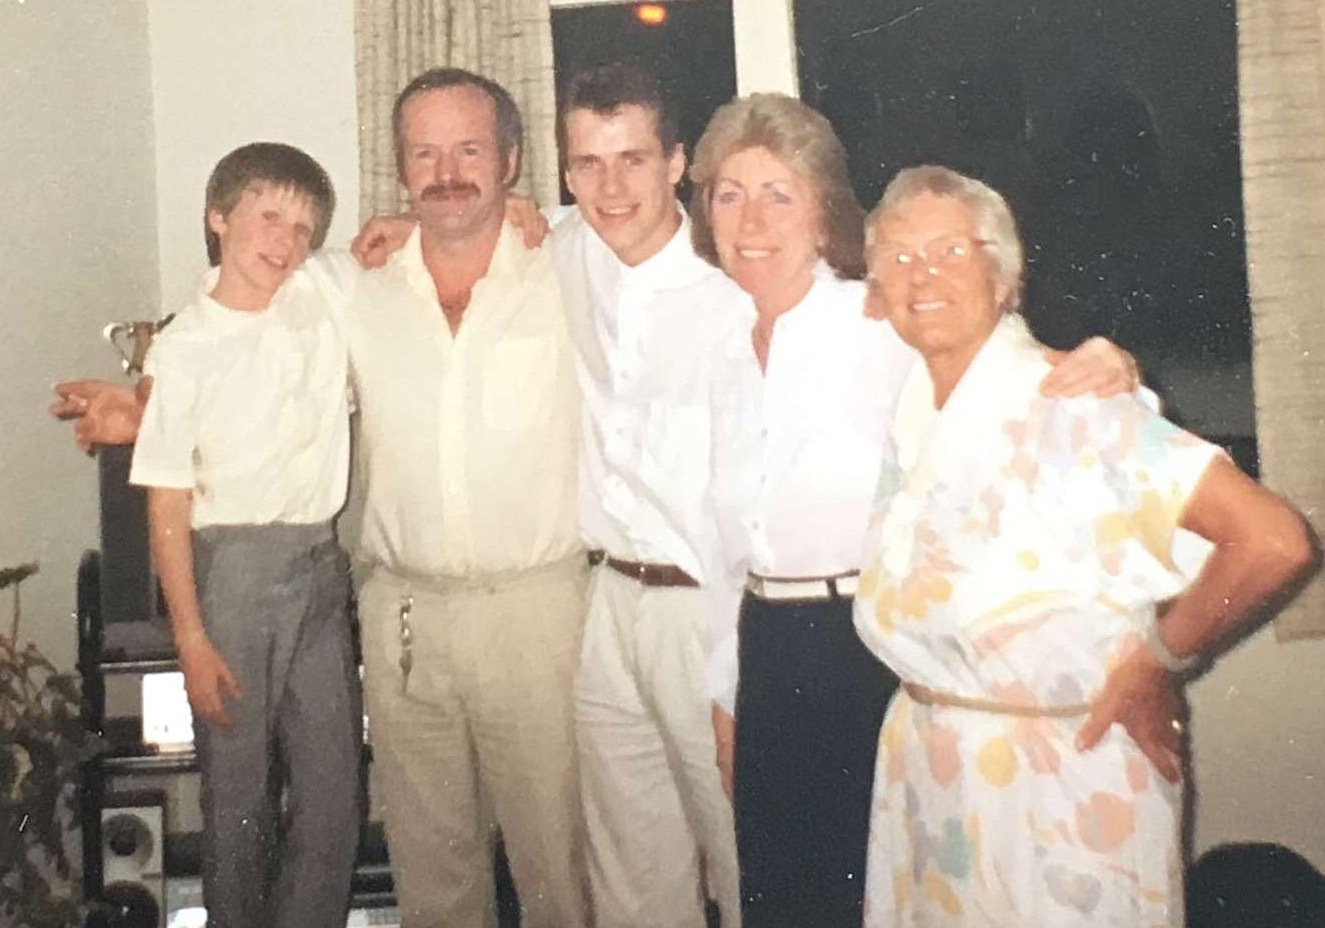 Take on Saturday 2nd July 1988. From left to right; Shane's brother Jamie, his Dad, Shane, his Mum and his Dad's mum Ida on the far right